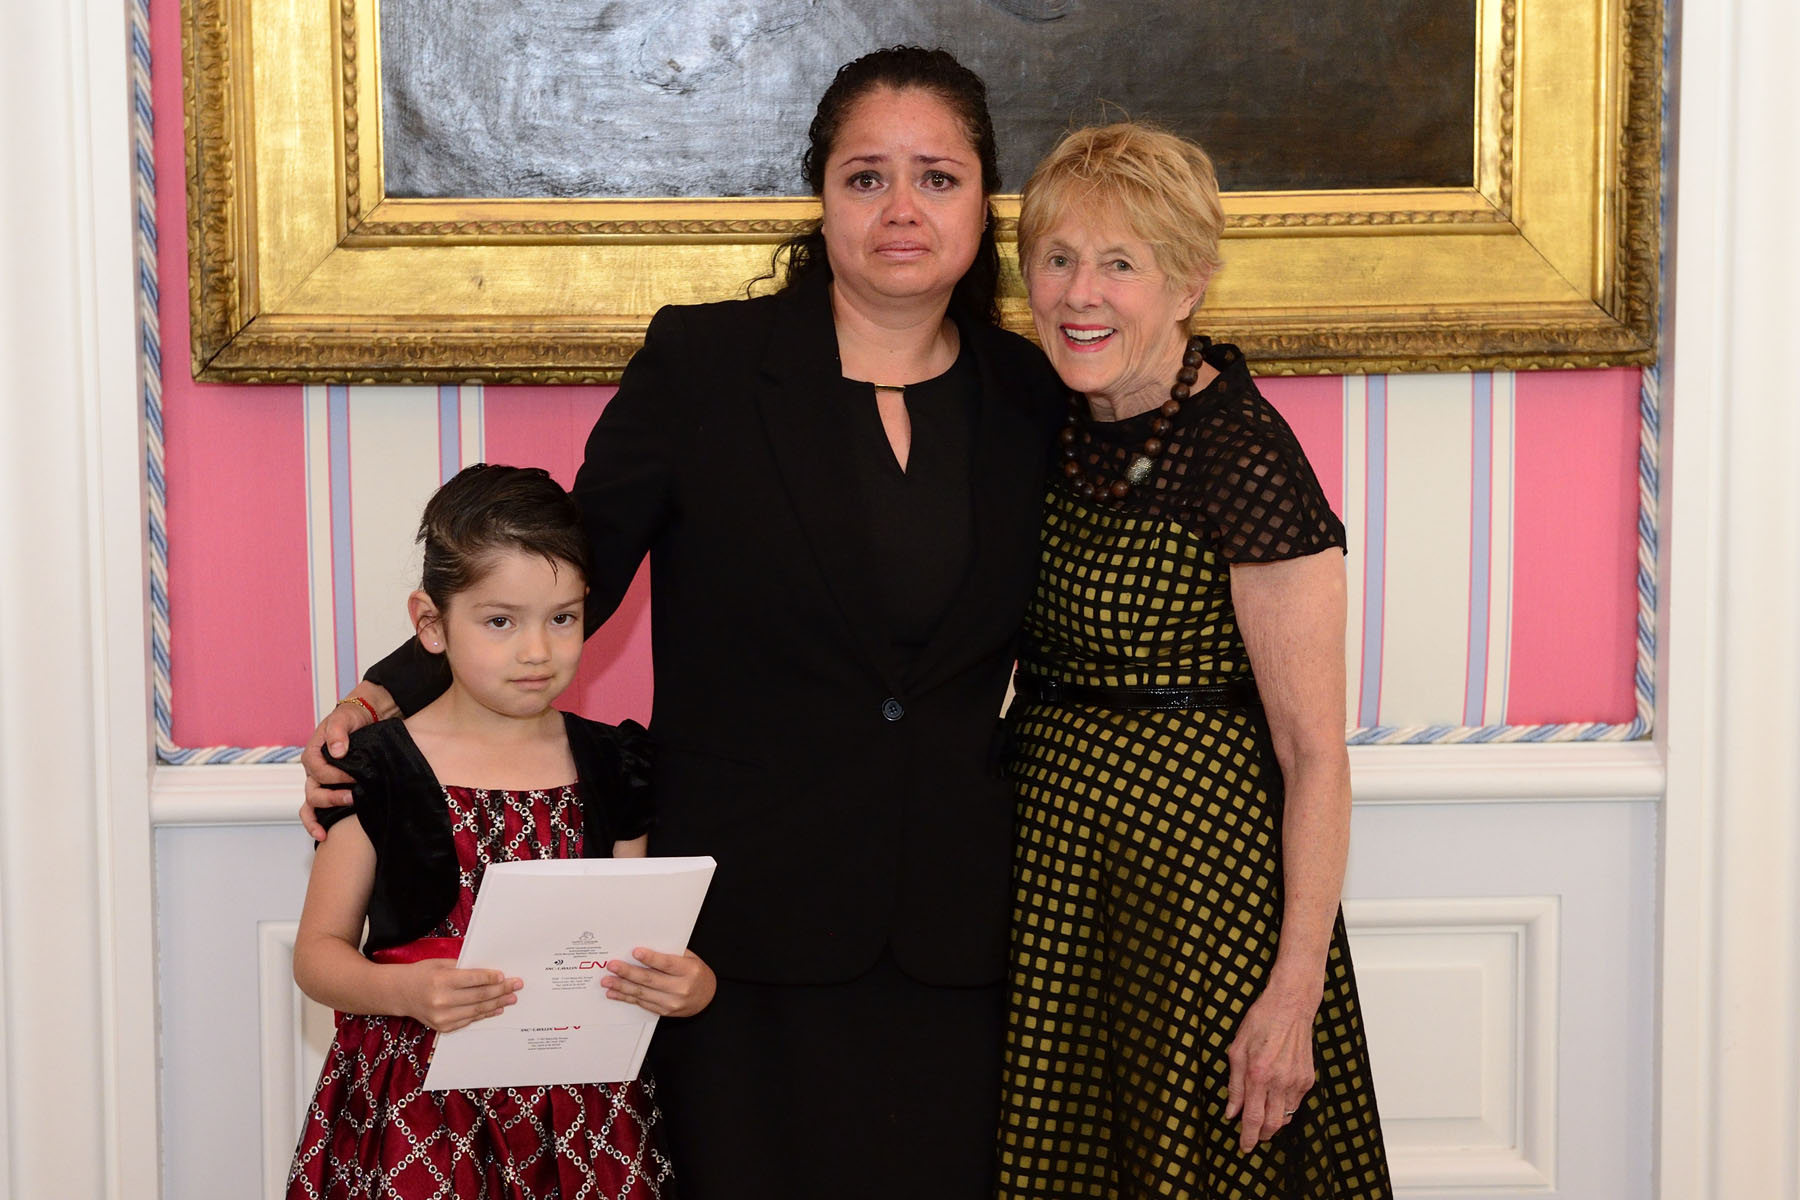 Each year, an award is also given to a HIPPY mothers who embody the courage and determination of HIPPY families and serve as models for the unique role mothers play in leading social change. Ms. Erika Infante Pizarro was accompanied by her daughter when she accepted her award.